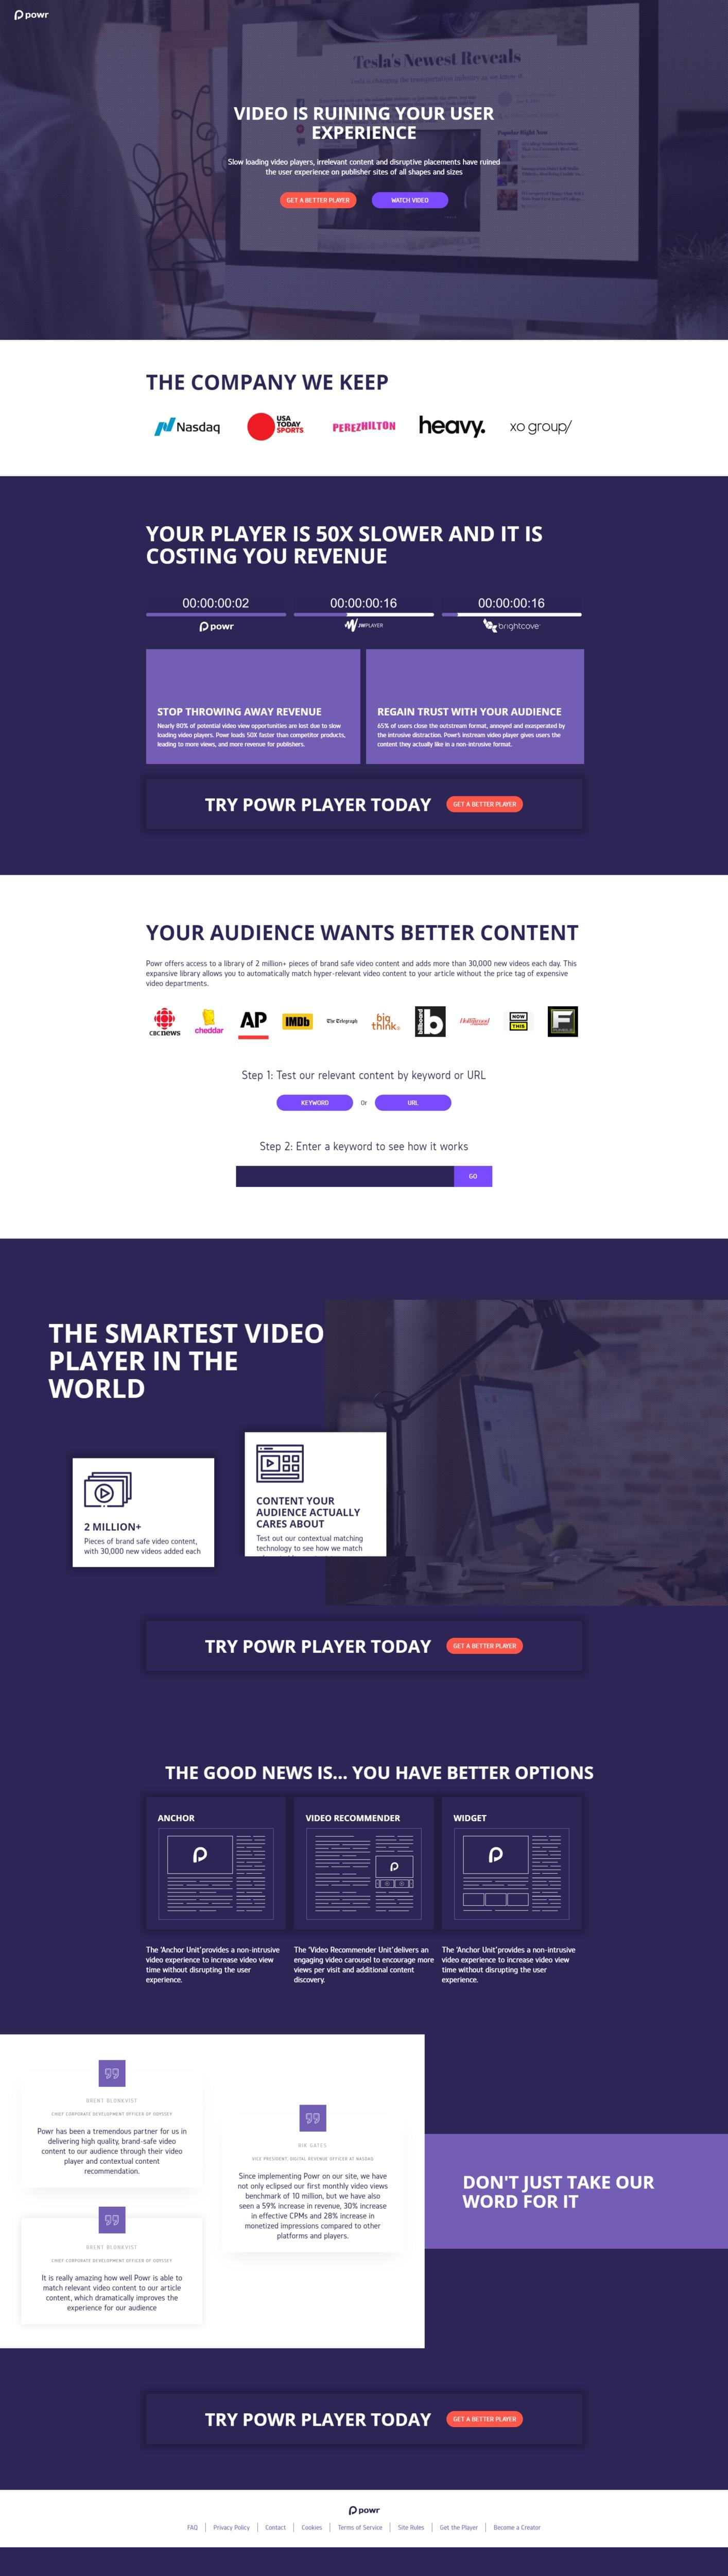 Custom Website Design and Development by crazysheep_studio - 115980